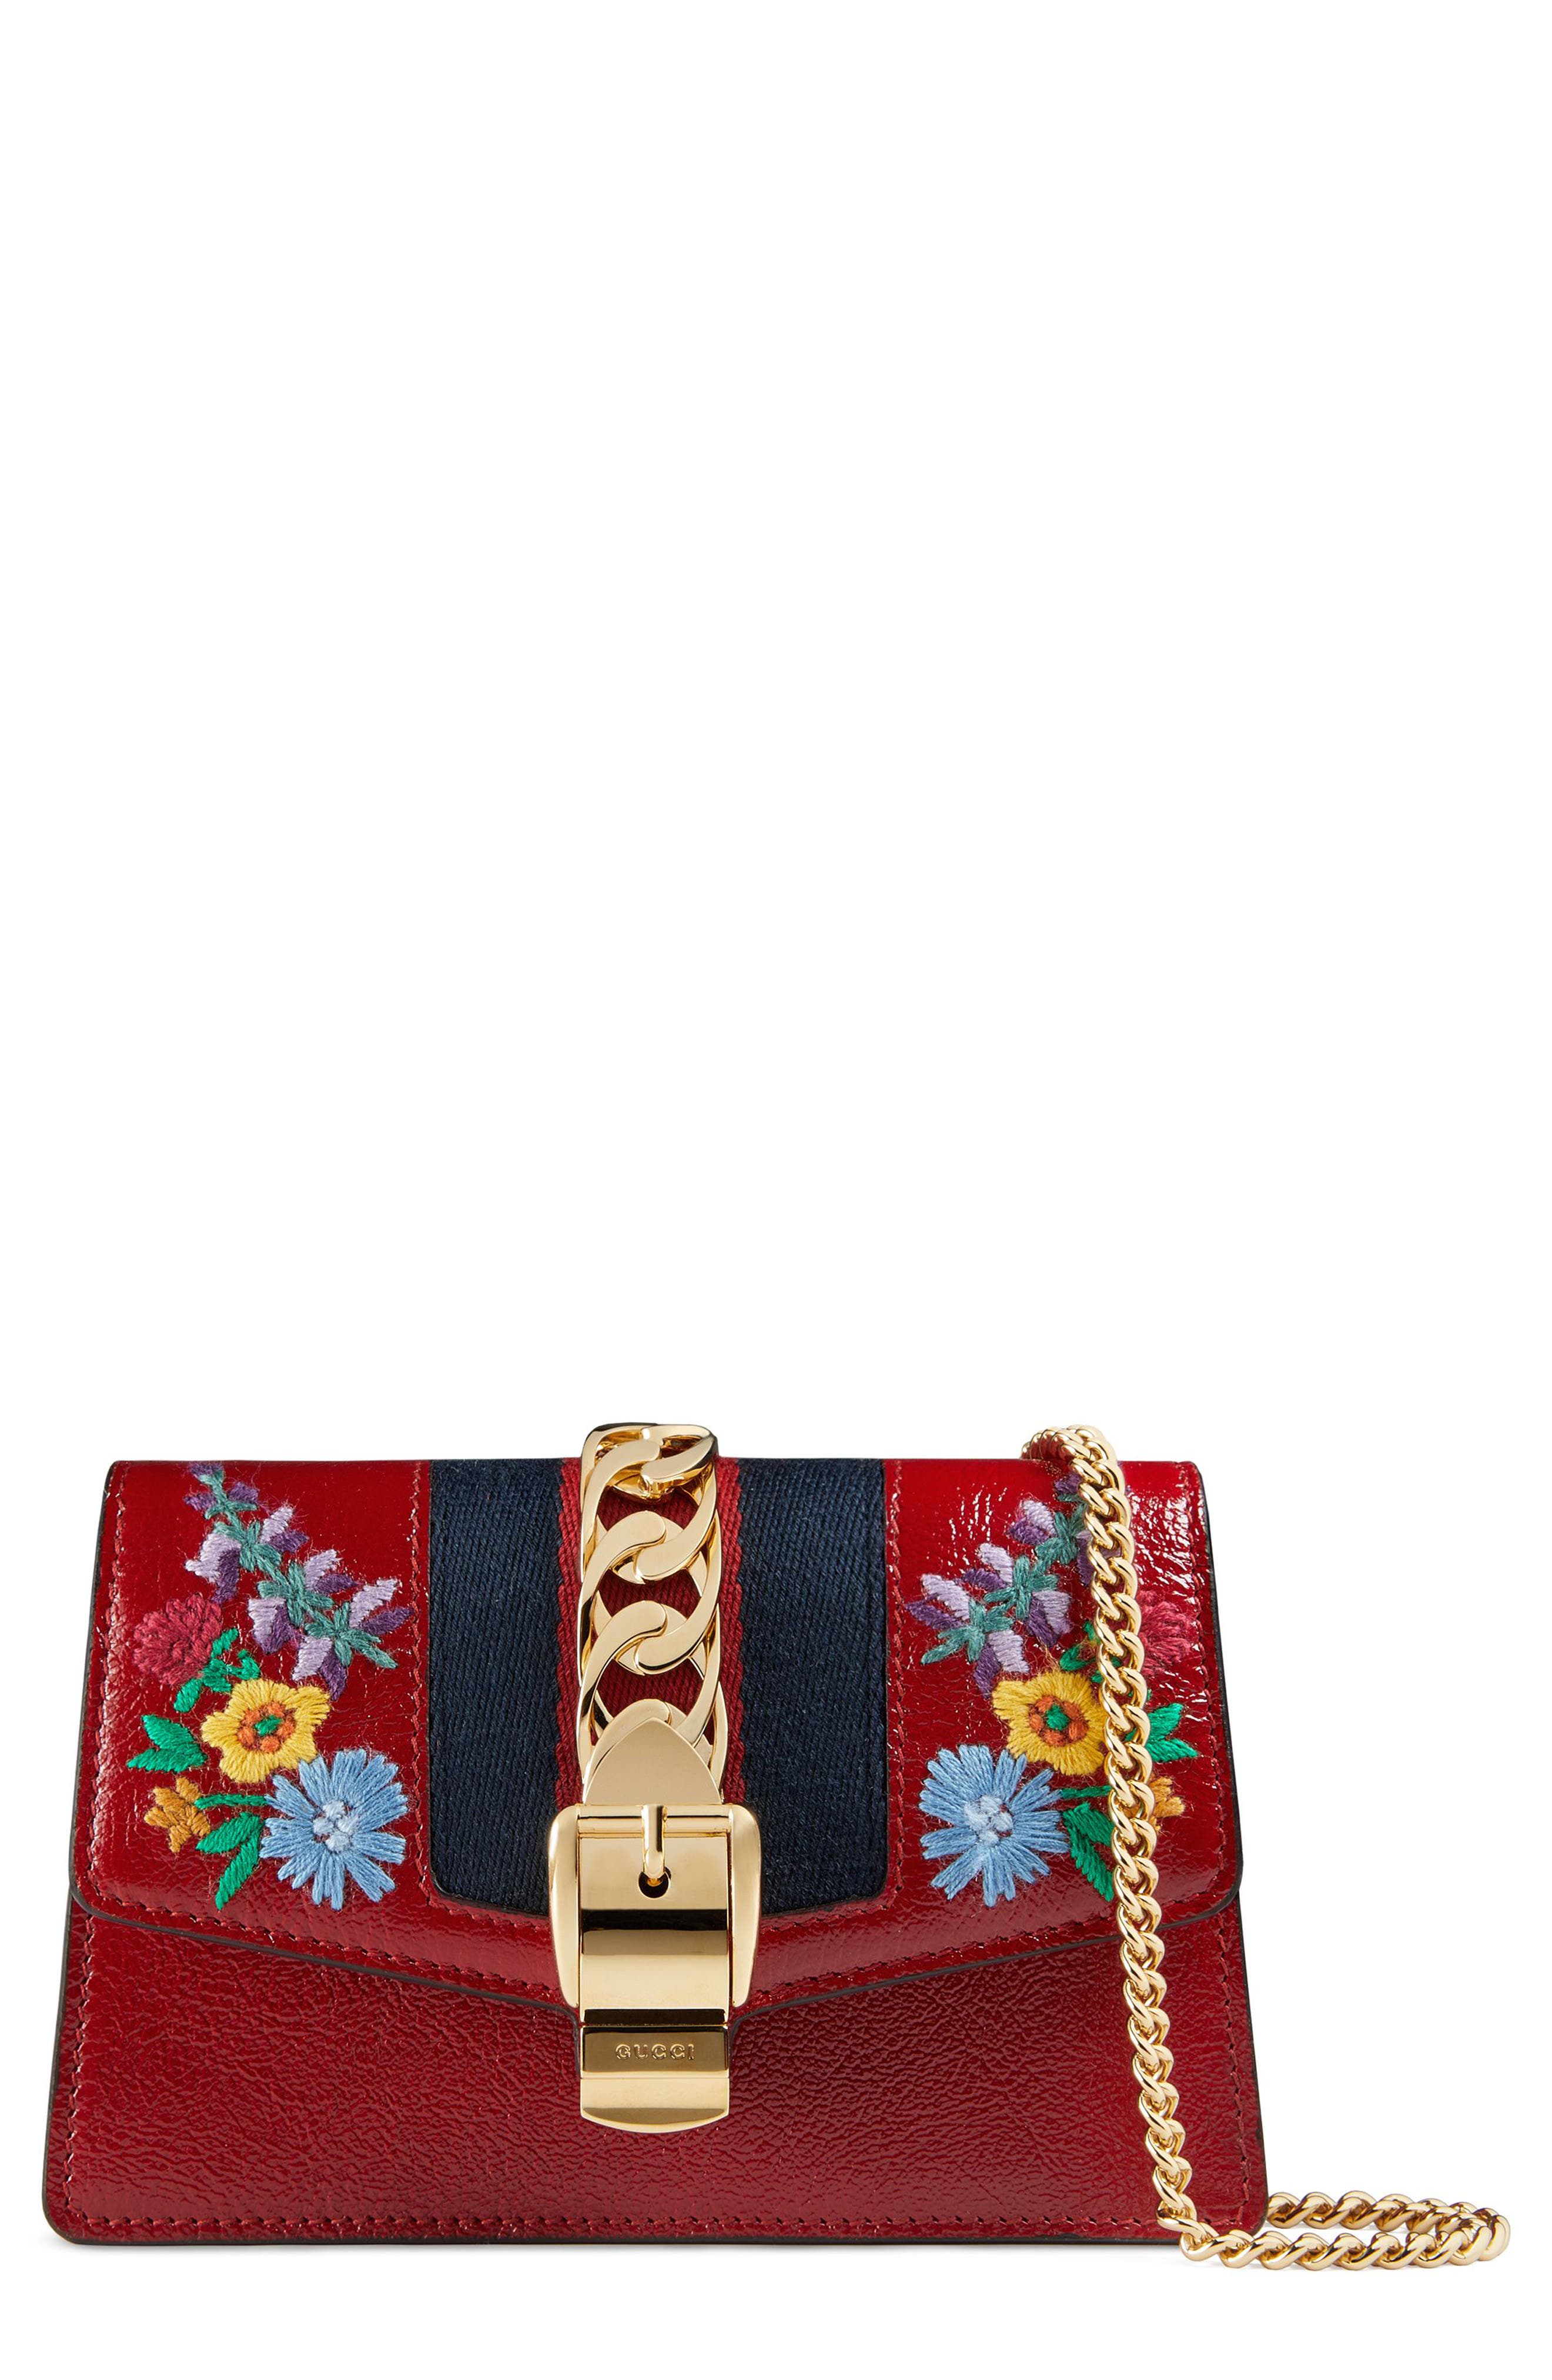 Super Mini Sylvie Embroidered Chain Wallet with Hook,                         Main,                         color, HIBISCUS RED MULTI/ BLUE